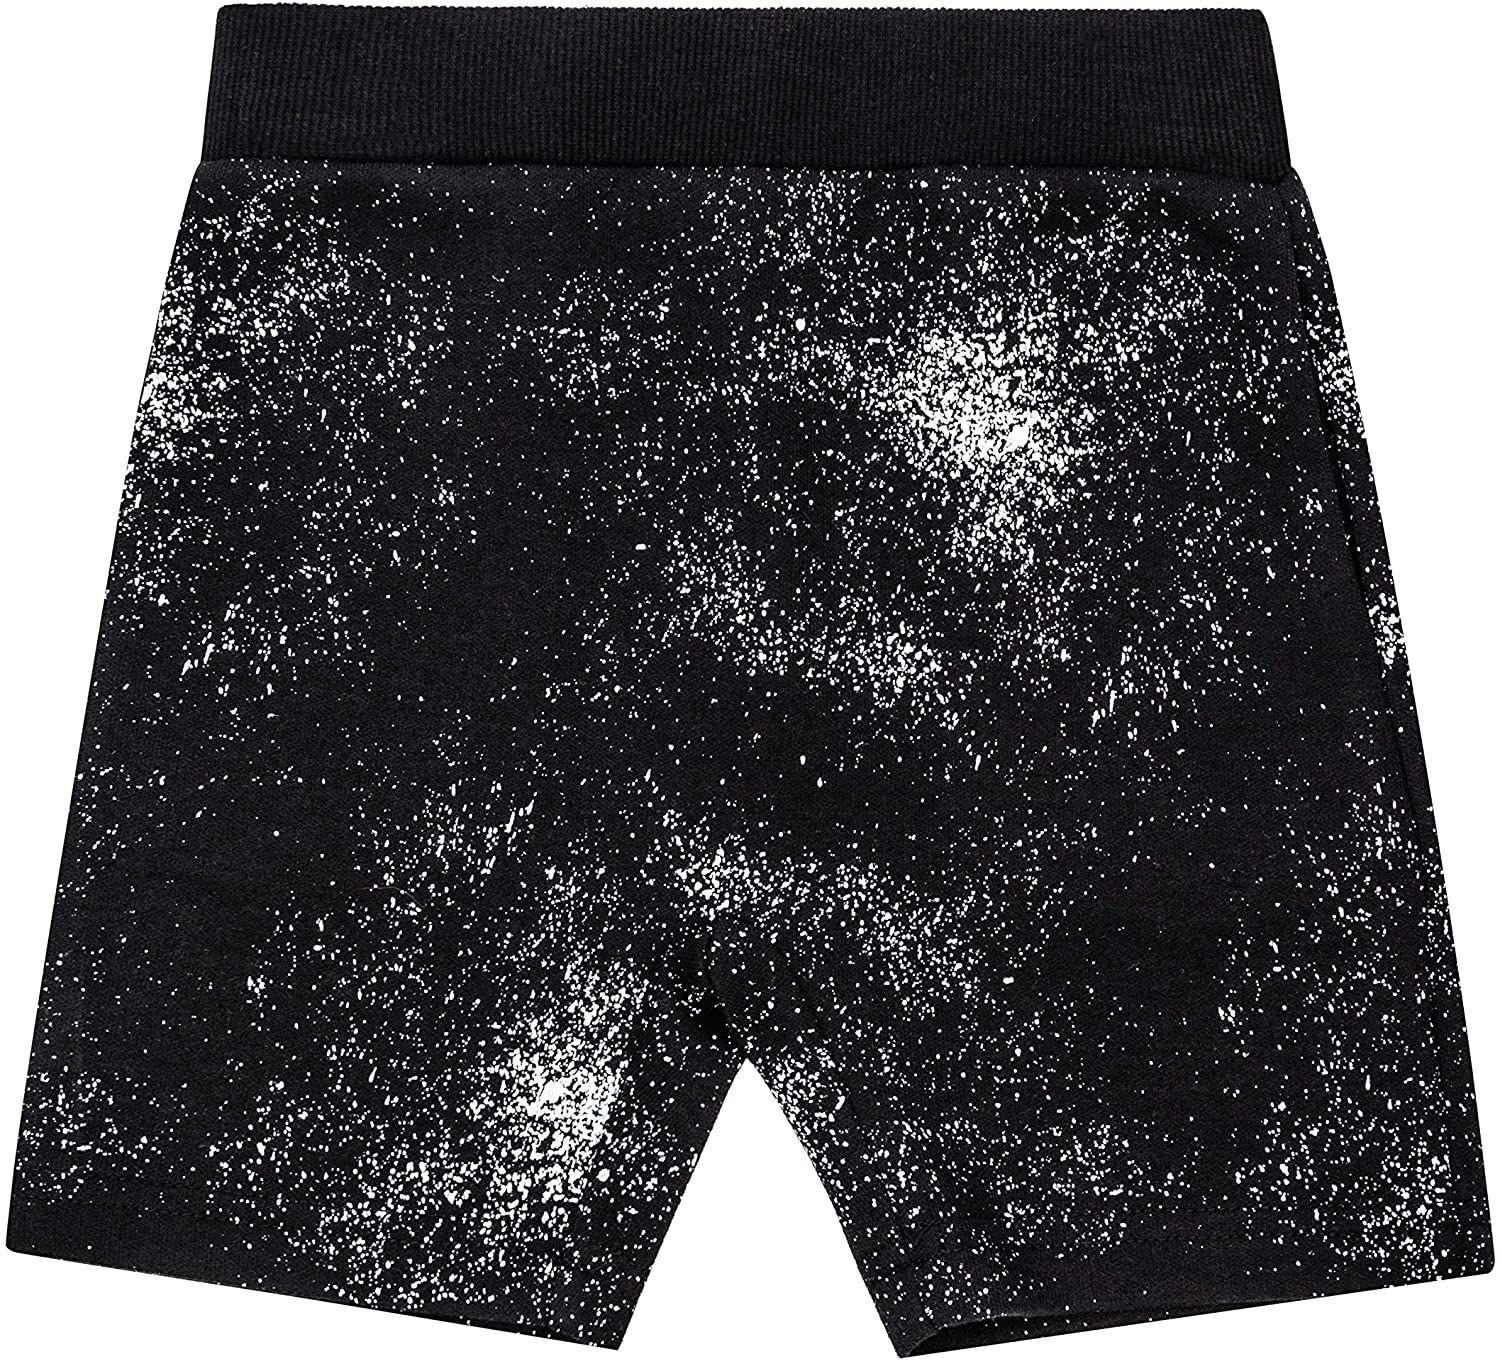 Petit Lem Big Shorts for Boys, Stylish and Fun